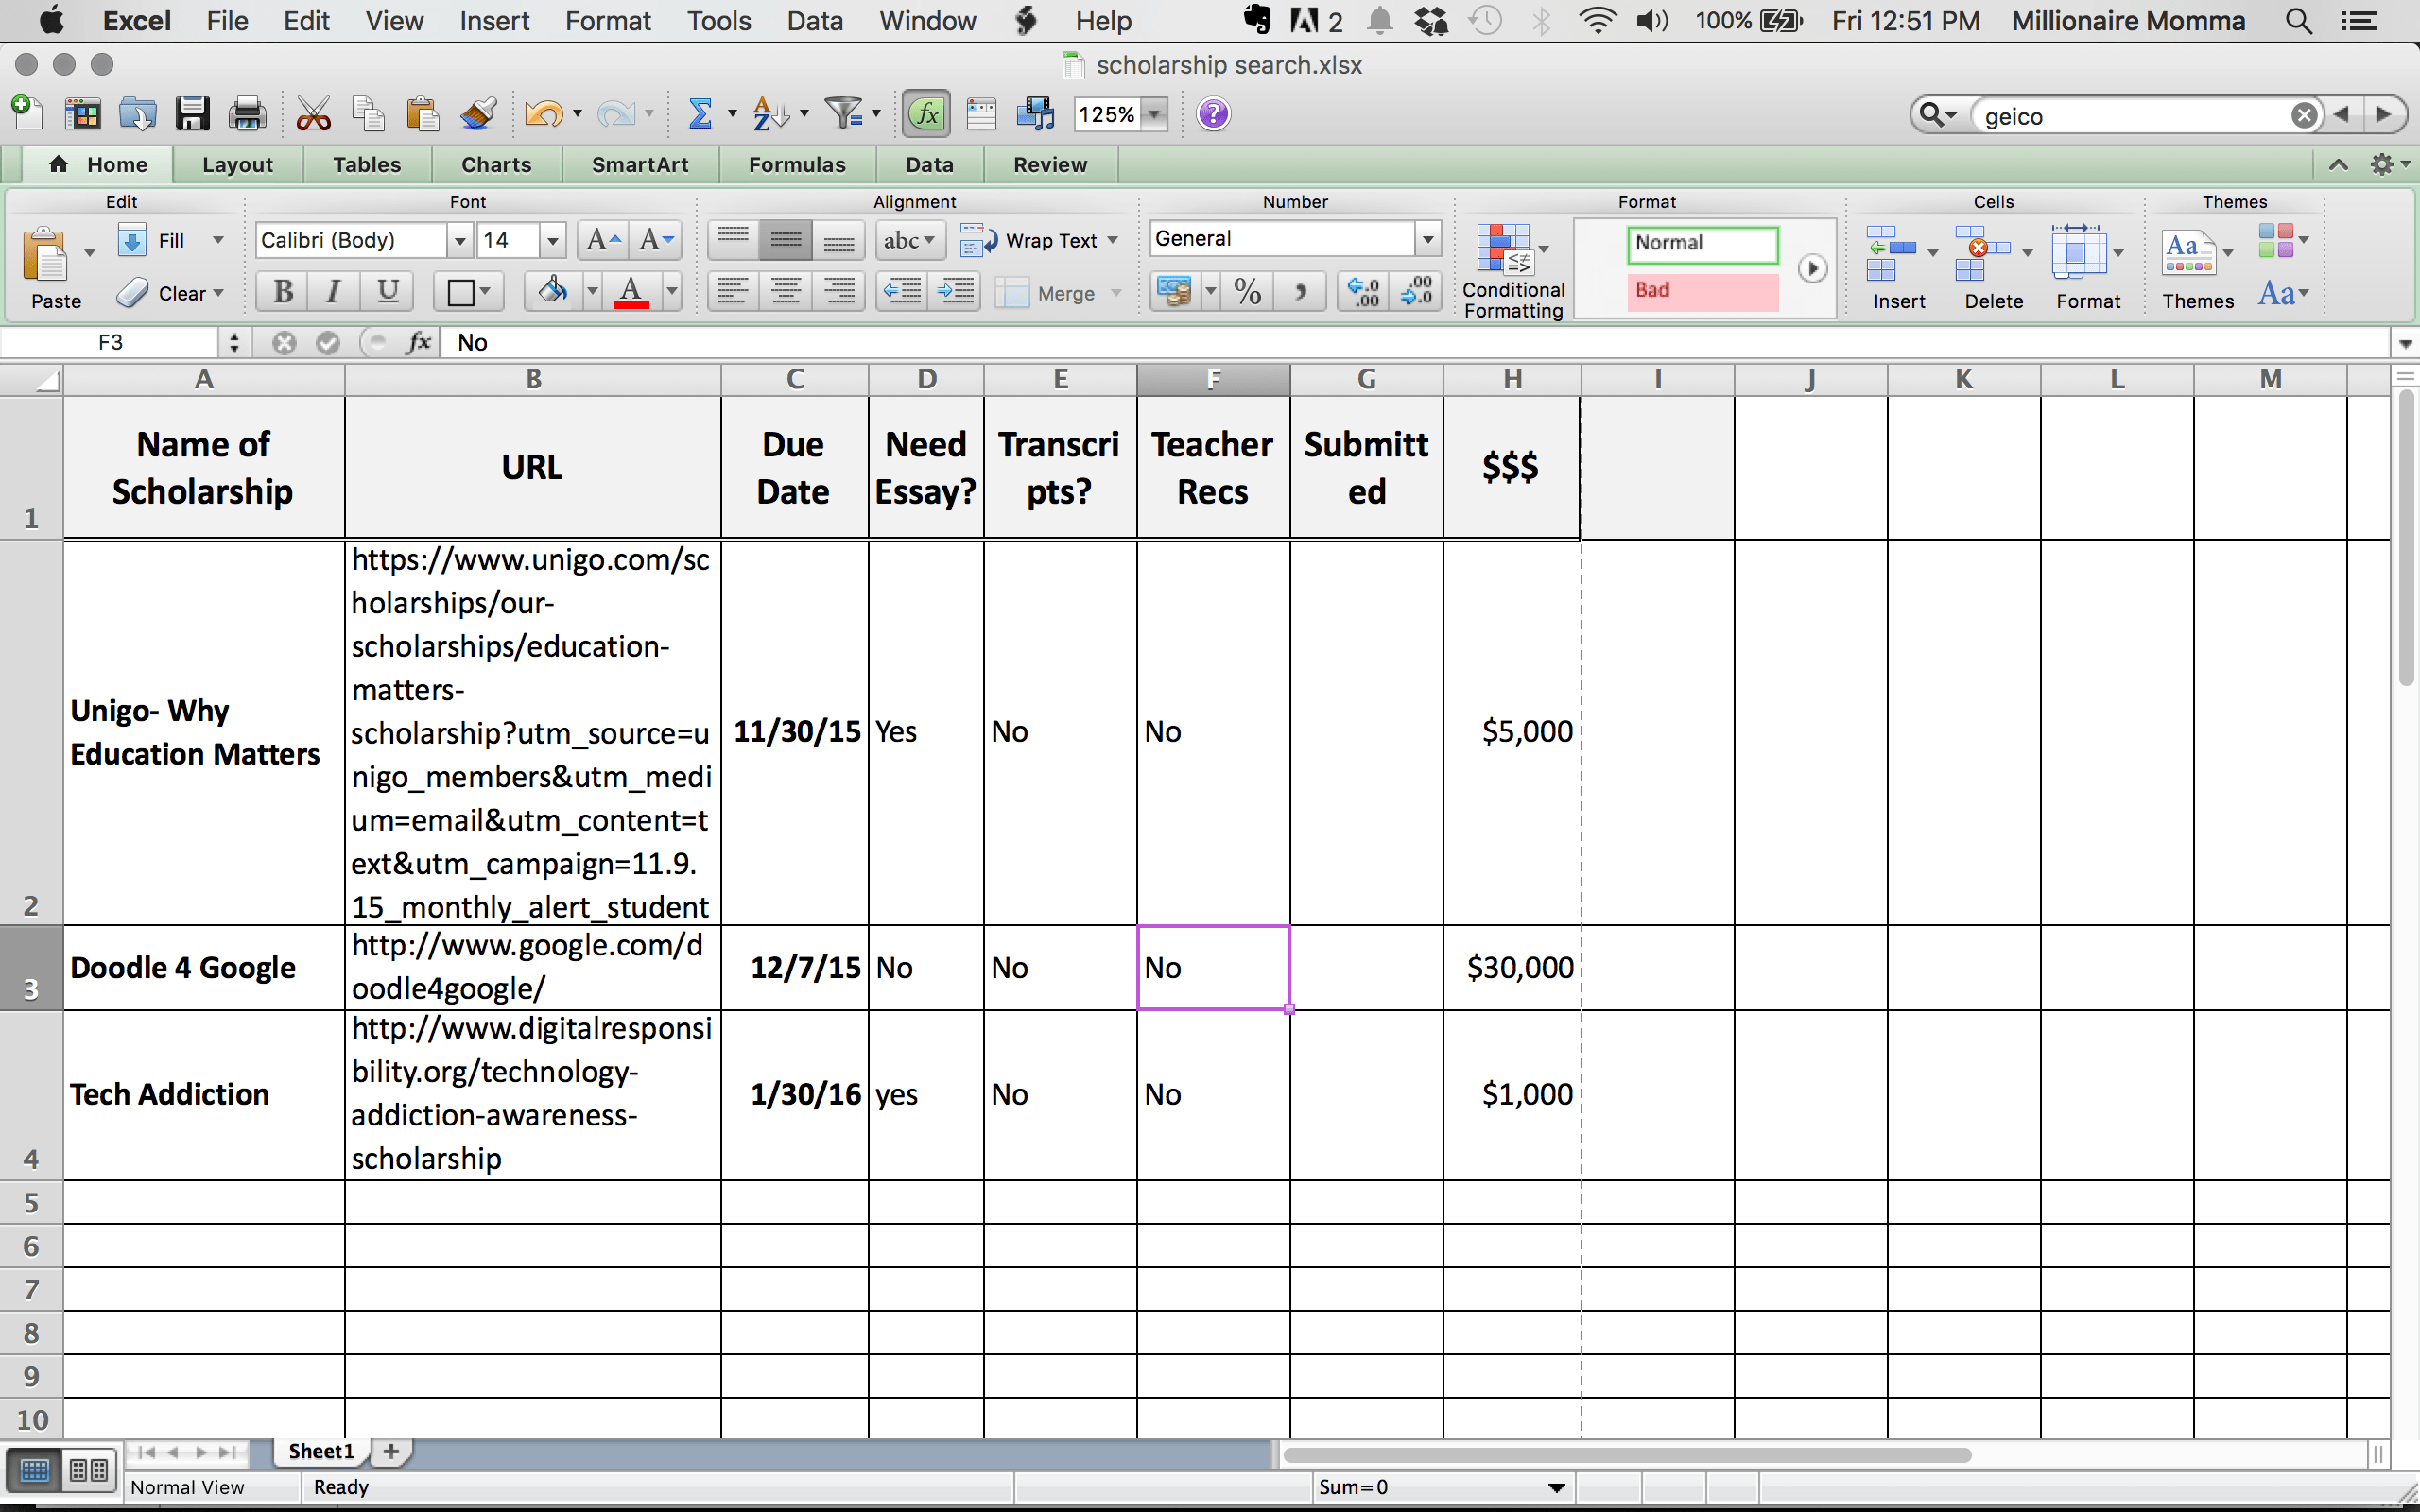 Organize Your Scholarship Search With Free Spreadsheet